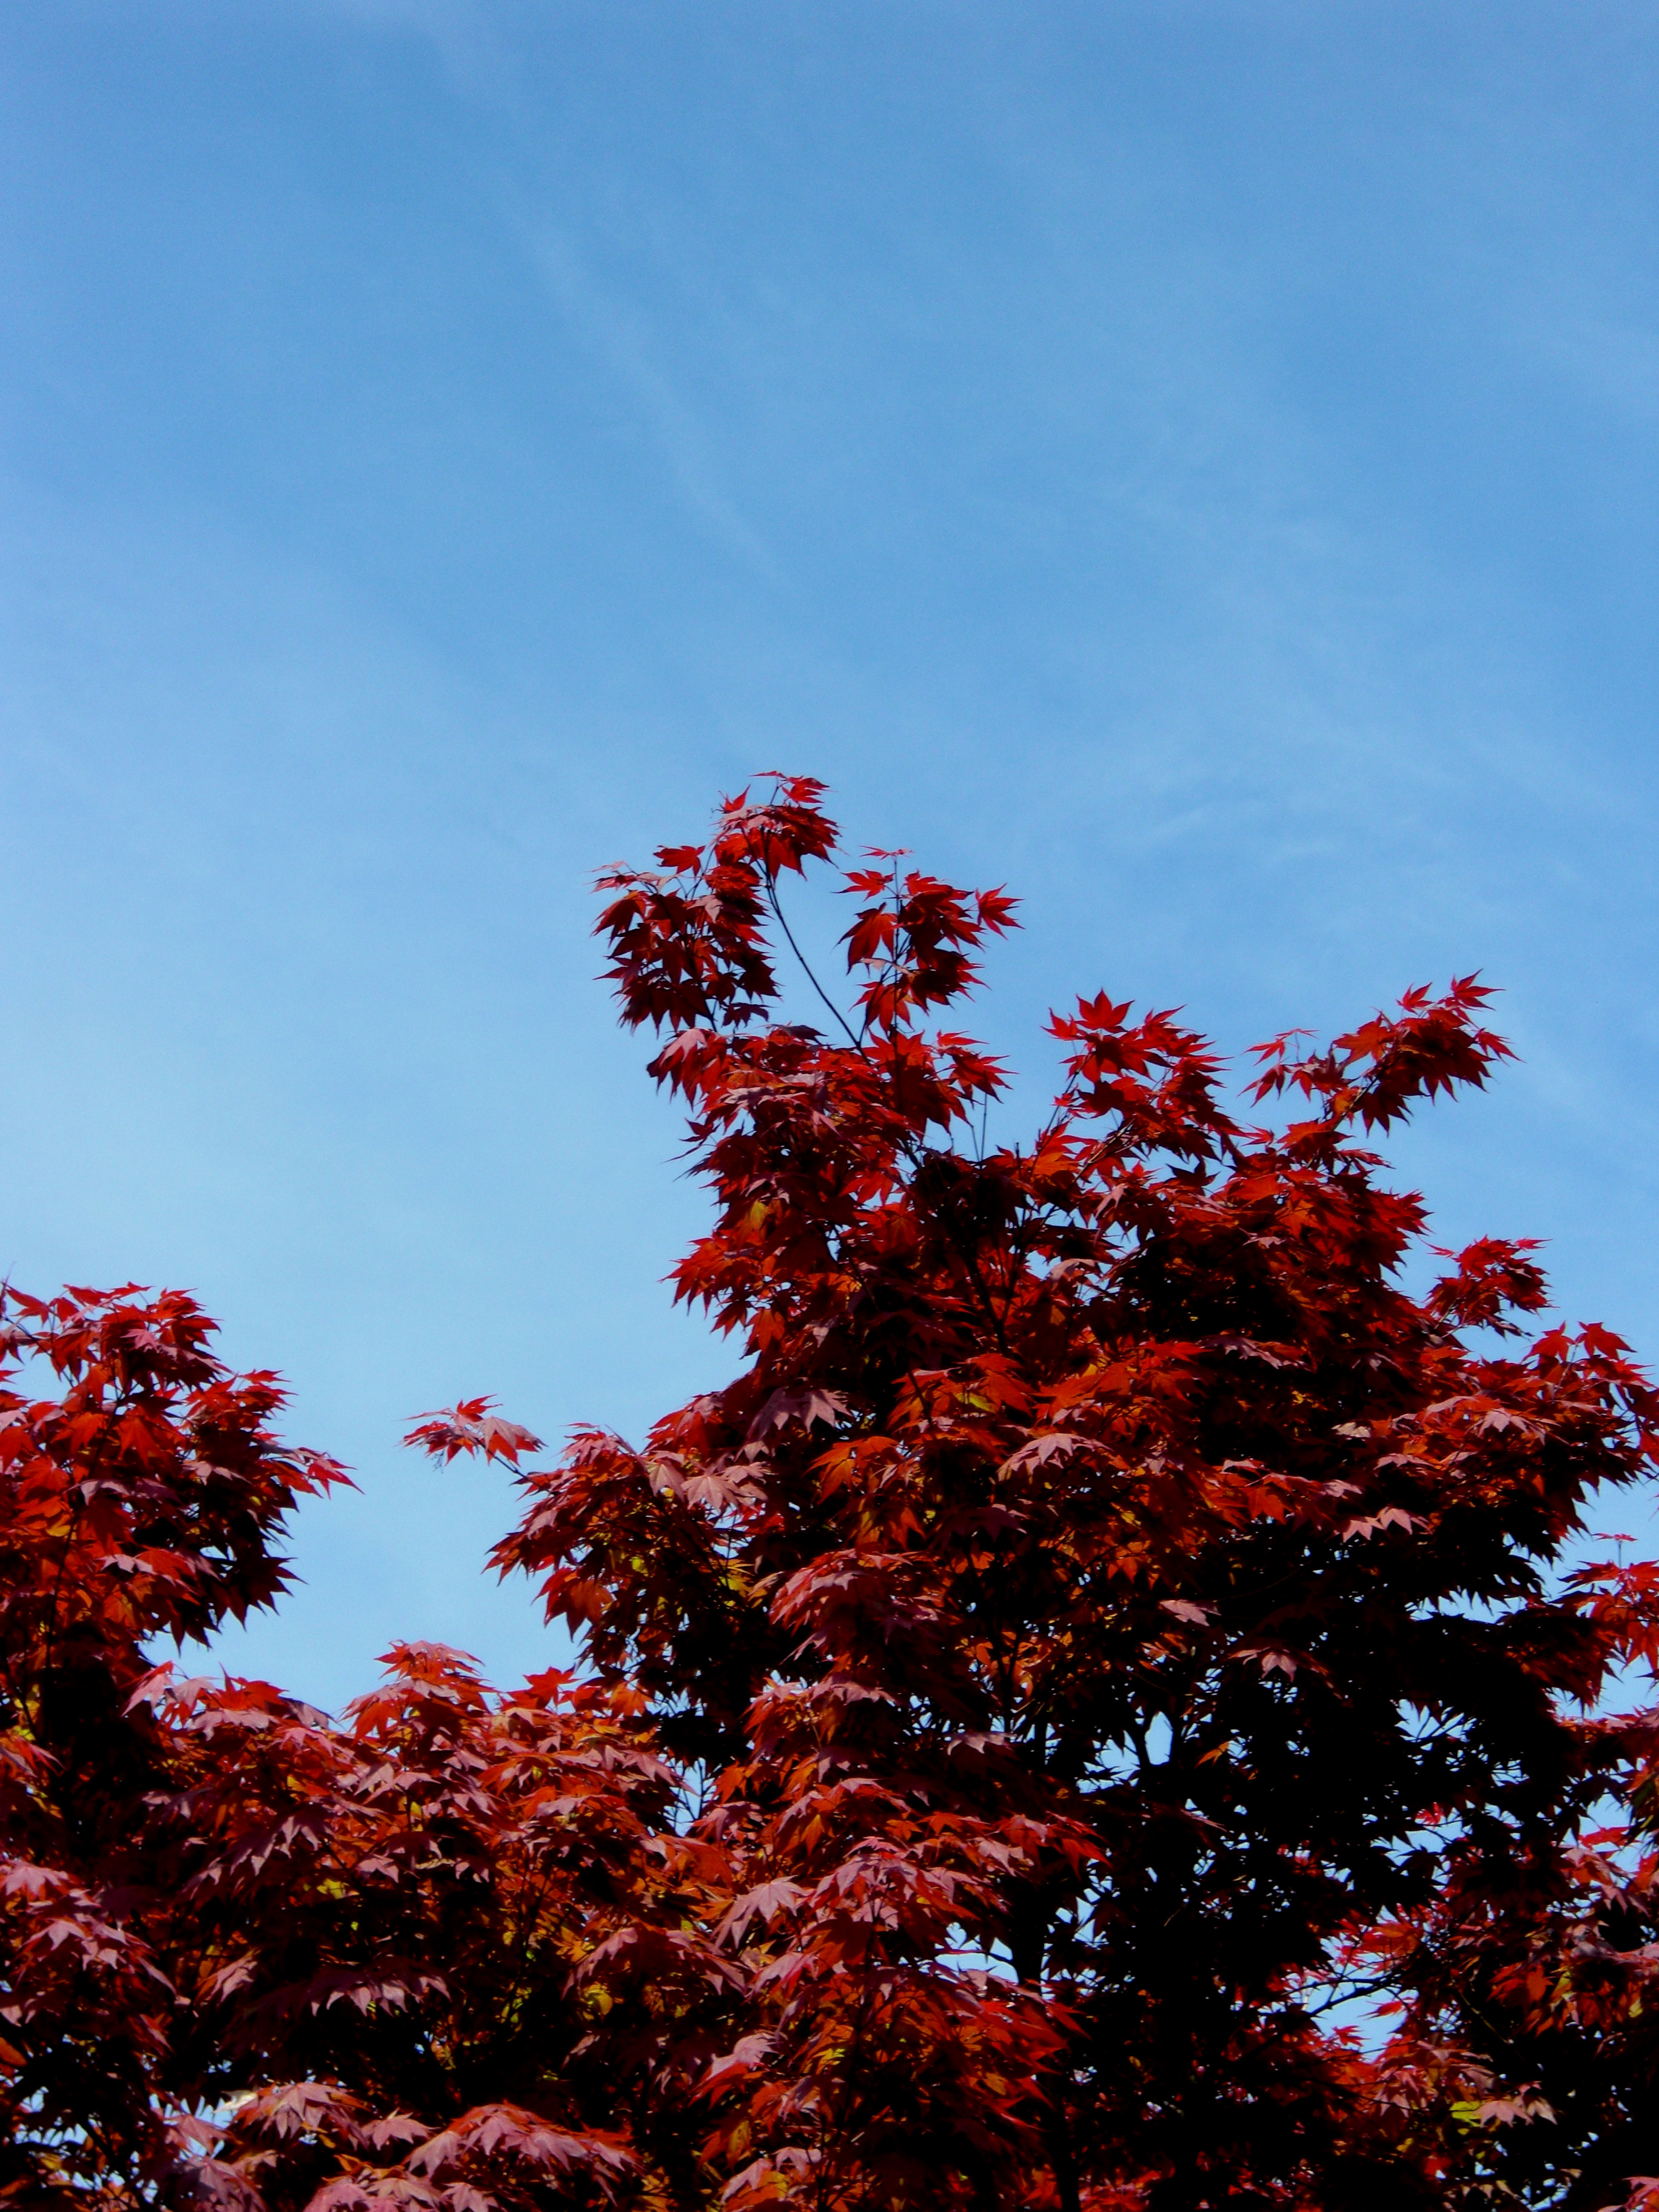 Fall, Red, Season, Sky, Trees, HQ Photo